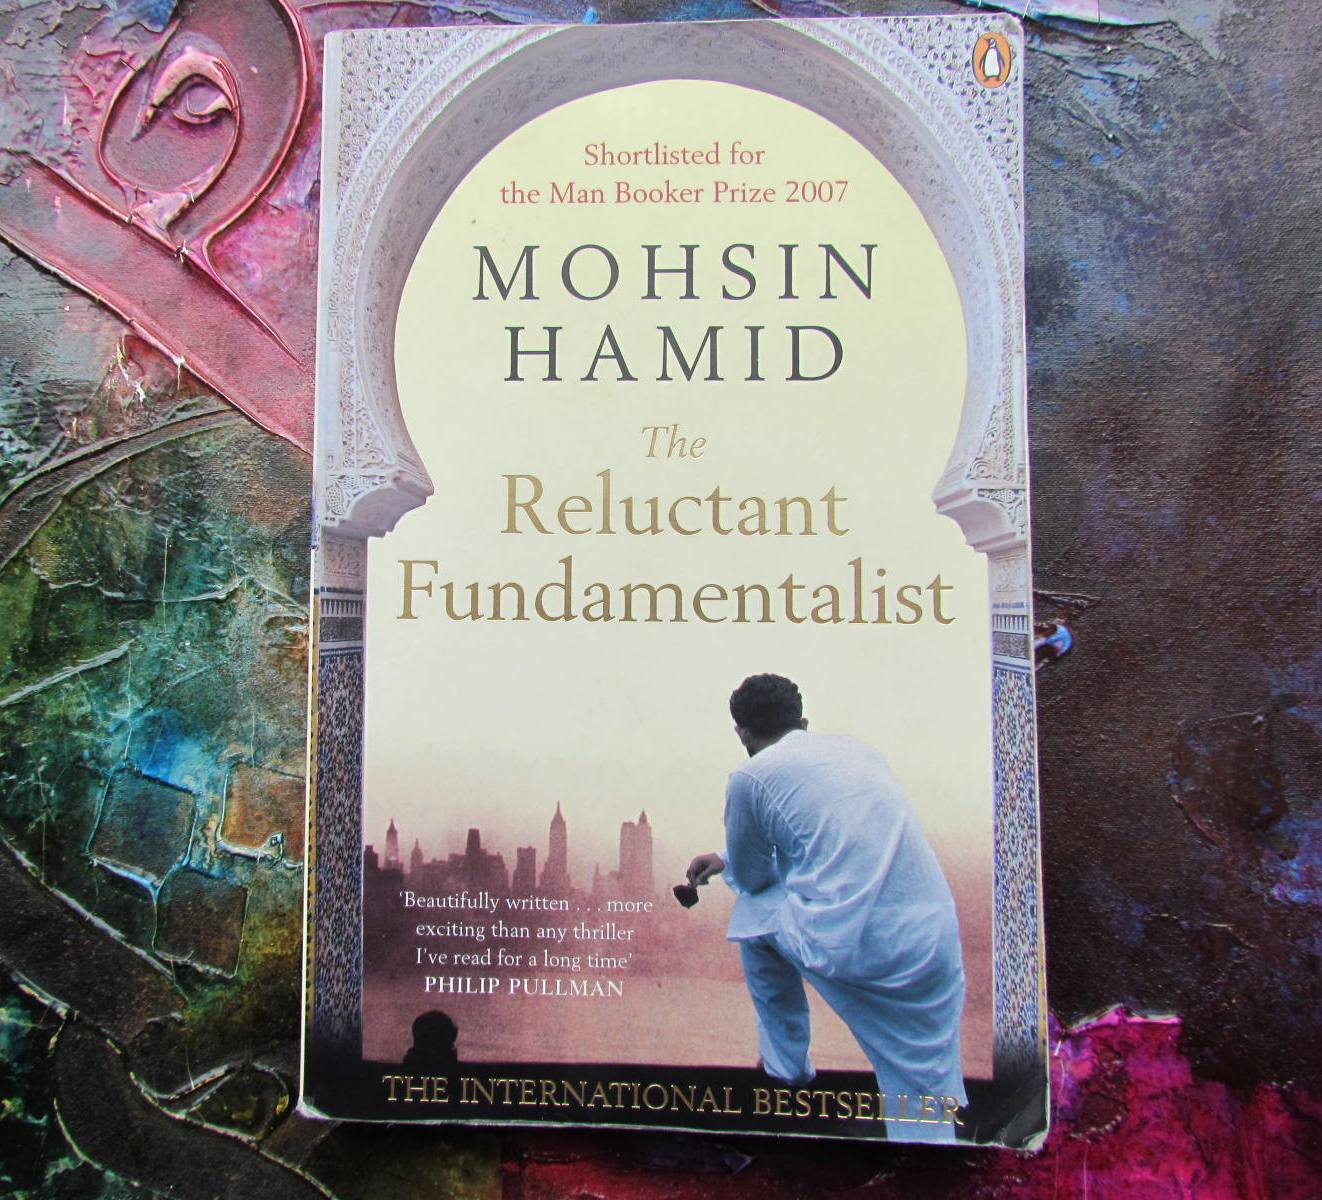 reluctant fundsamentalist review My review of how to get filthy rich in rising asia: pick up a copy of the reluctant fundamentalist by mohsin hamid:.